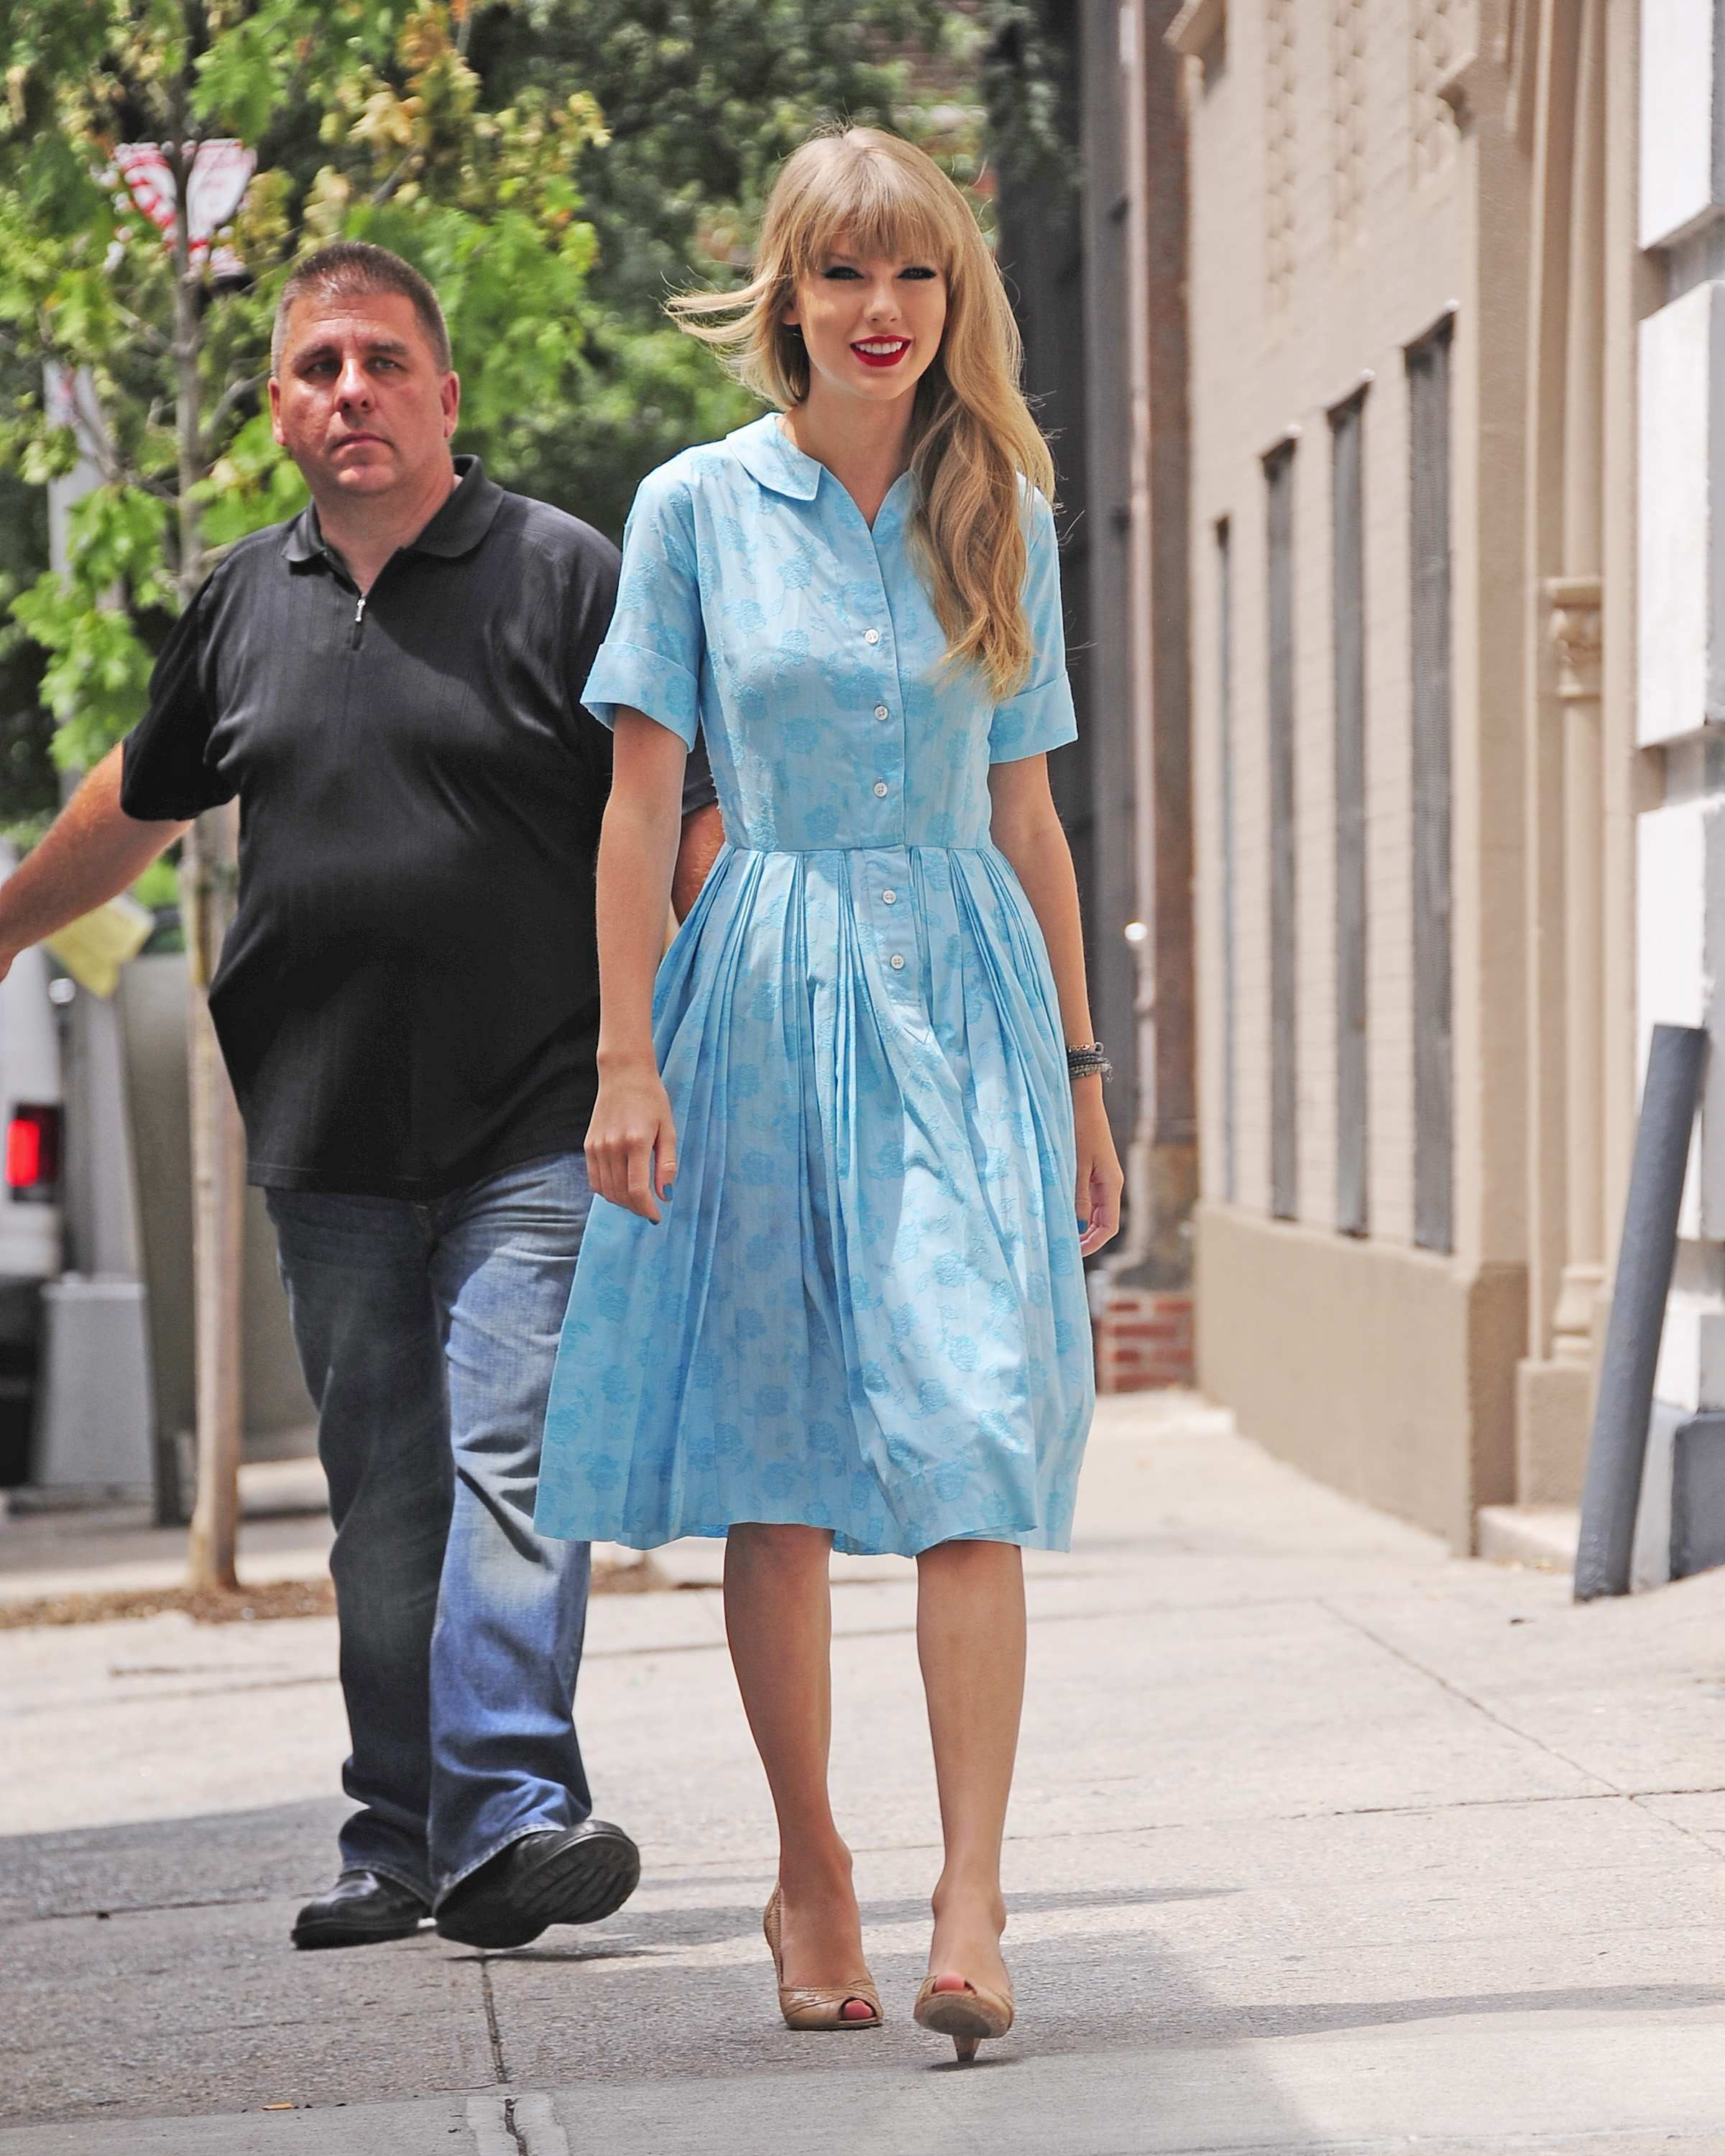 Swift Taylor retro fashion pictures 2019